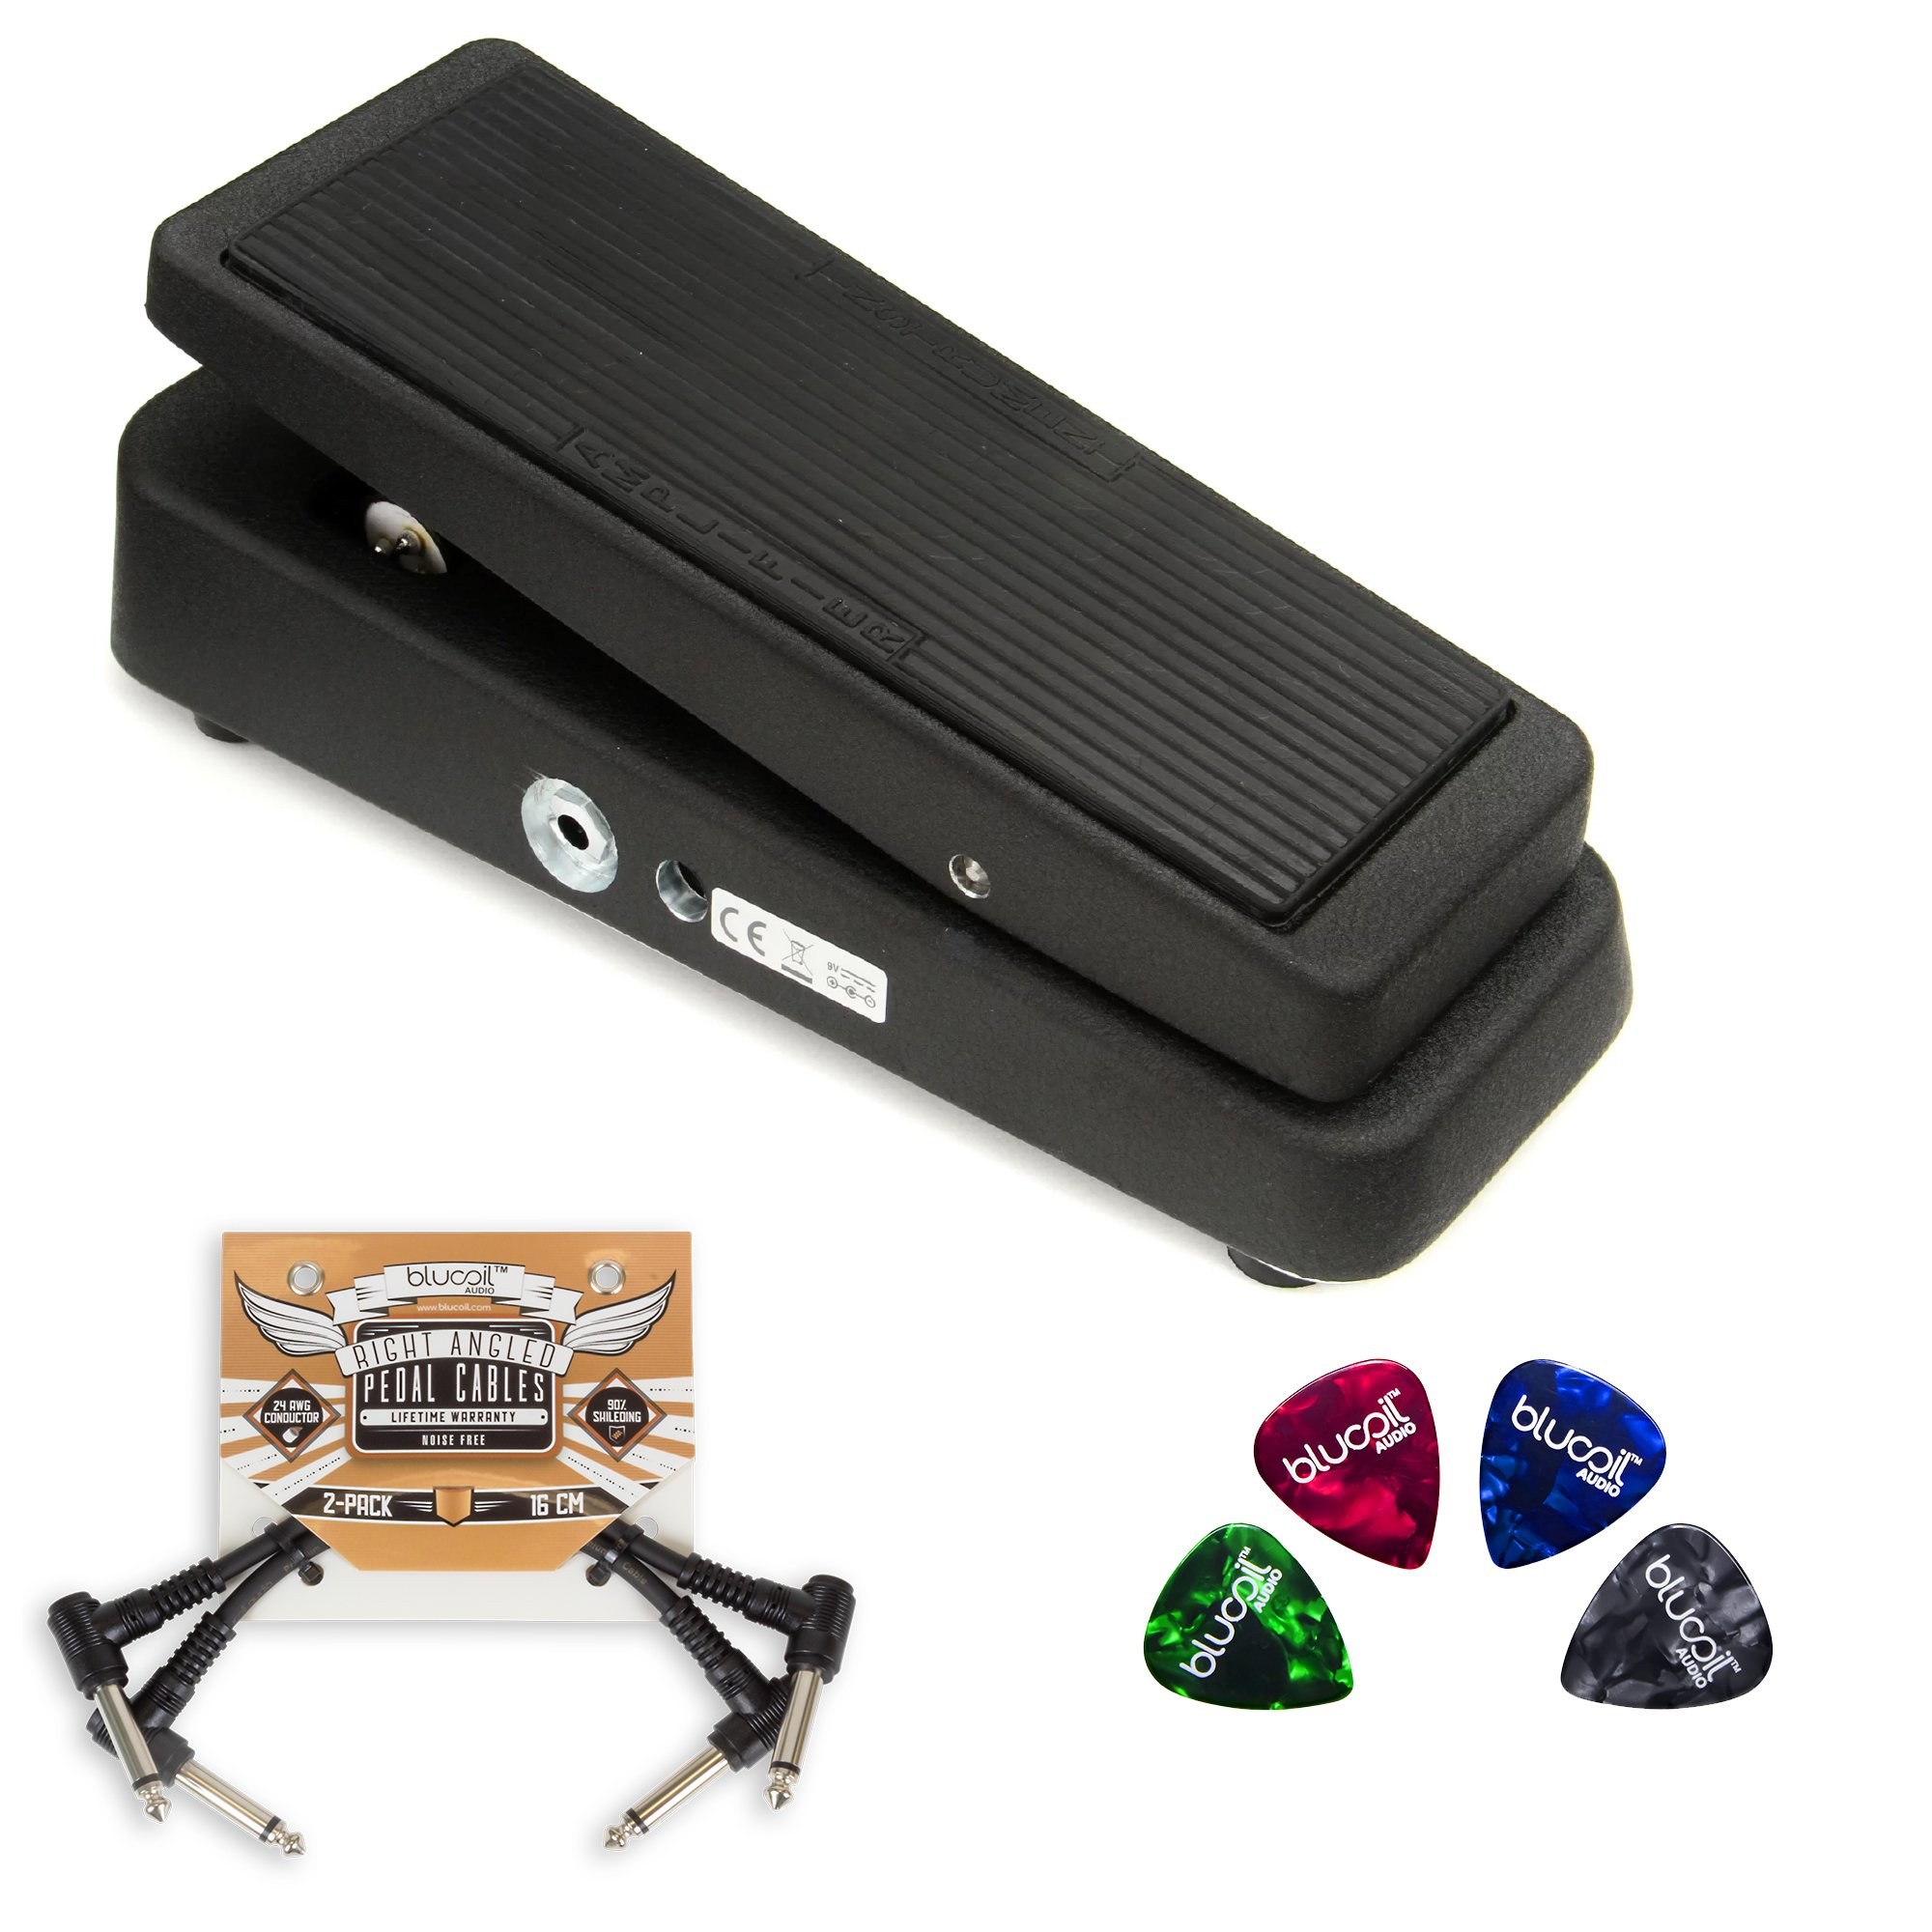 Jim Dunlop GCB95 Cry Baby Standard Wah Pedal BUNDLED WITH 2-Pack of Blucoil Pedal Patch Cables AND 4 Celluloid Guitar Picks by blucoil